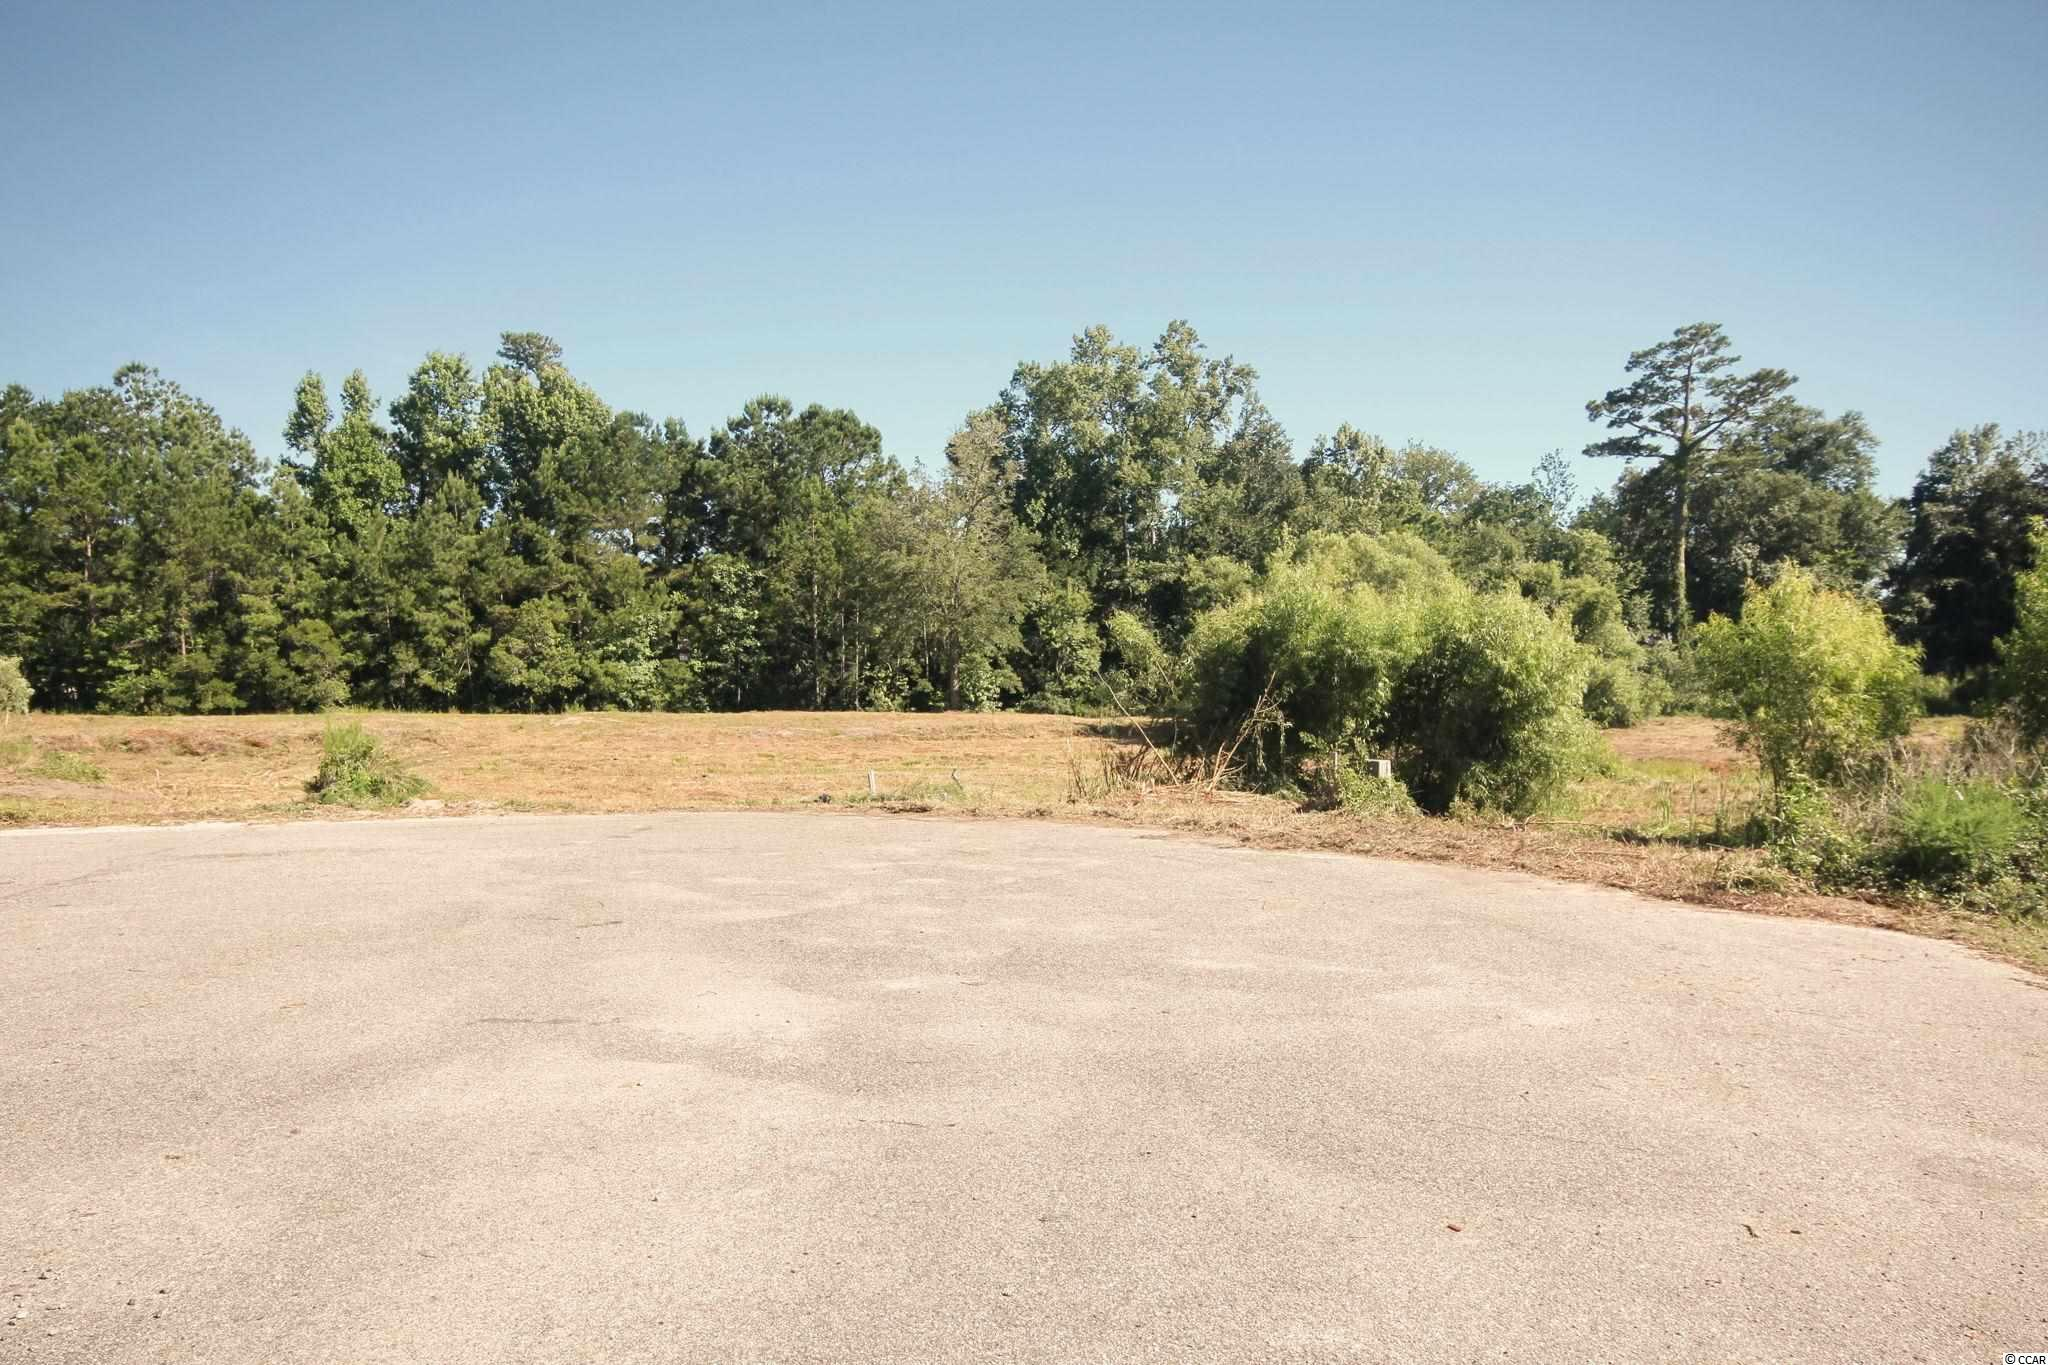 Rare!!  The location just does not get any better!  Located in the heart of scenic Little River, within walking distance or a short golf cart ride to the Intracoastal Waterway and to the restaurants along the historic Little River Waterfront.  Multiple marinas located nearby for the boating and fishing enthusiast.  Two lots, measuring approximately 3/4 acre,  available east of Hwy 17.  Purchase one or both!  Cleared lots at the end of a cul-de-sac in a private wooded setting.   NO HOA and impact fees have been paid!  No time frame to build.  Buyer is responsible for paying tap fees and for verifying all information and measurements.